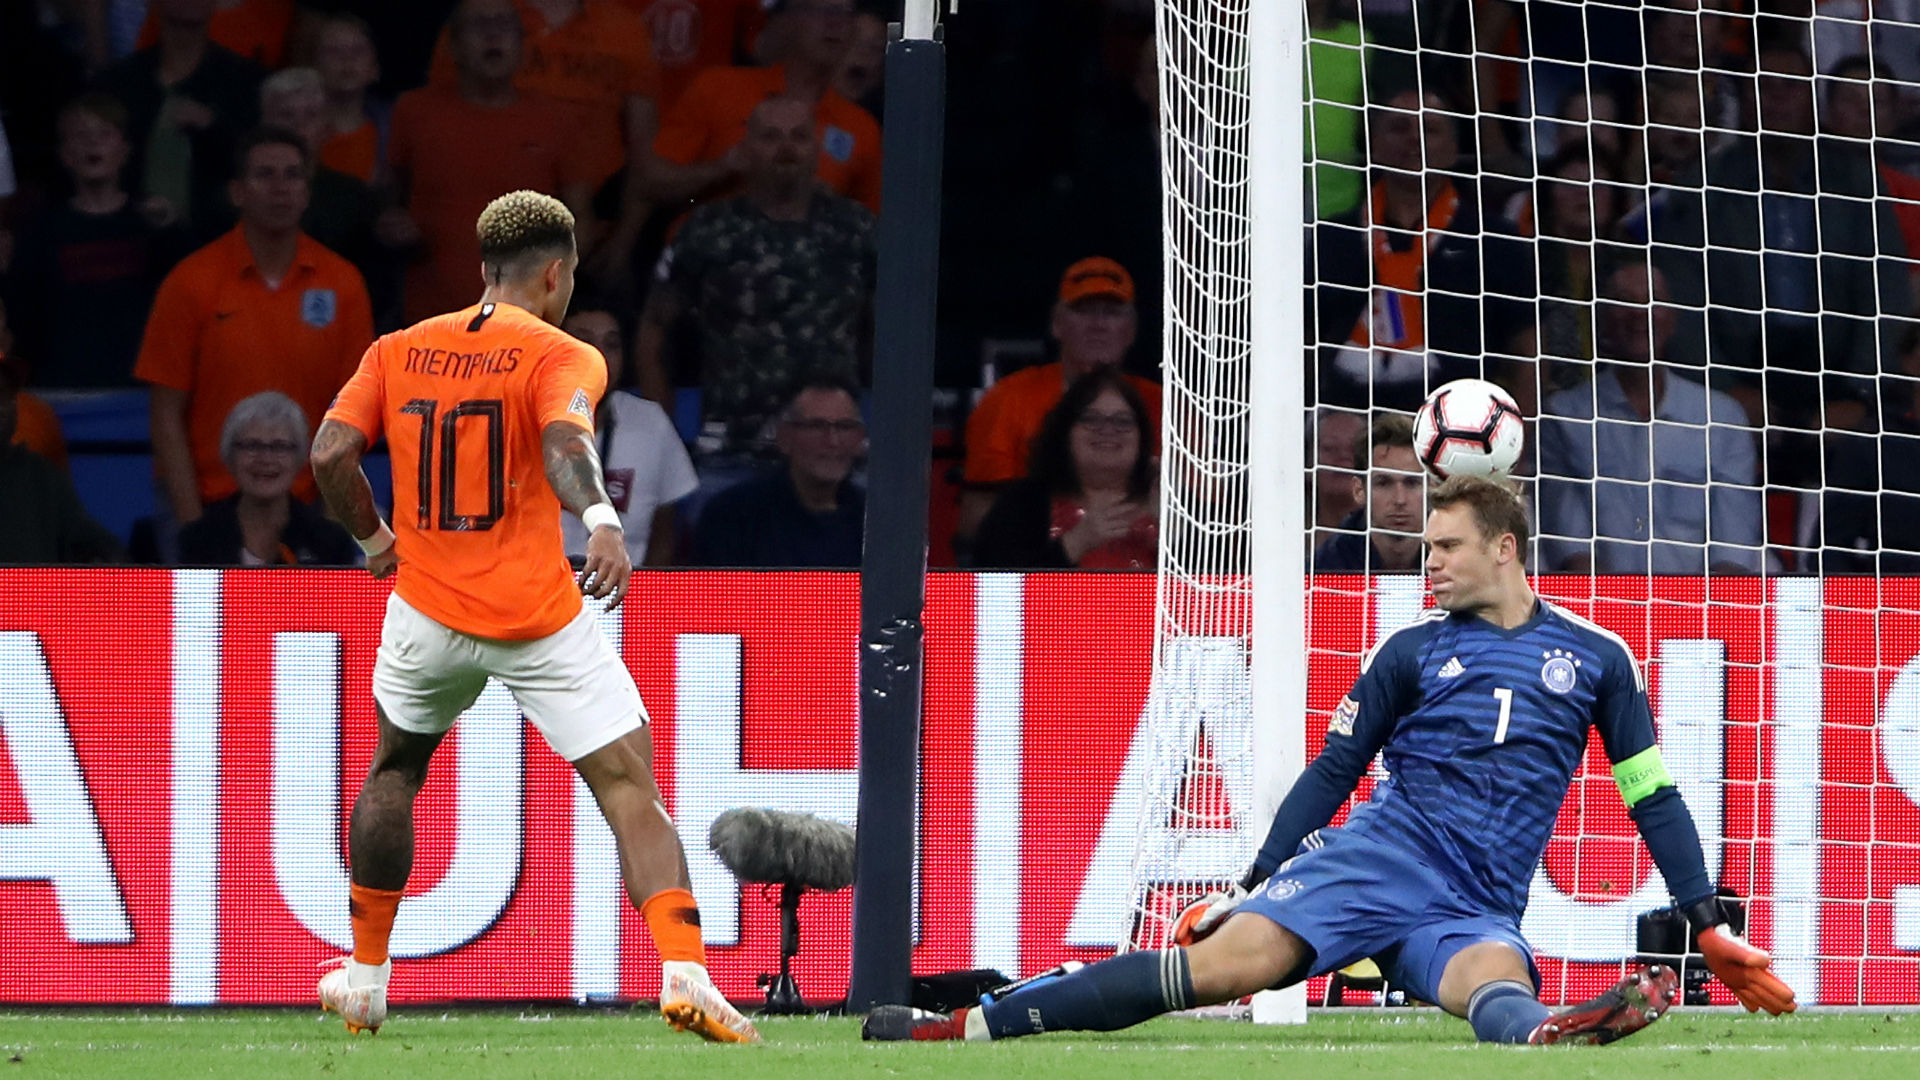 Depay shines as Netherlands thump Germany